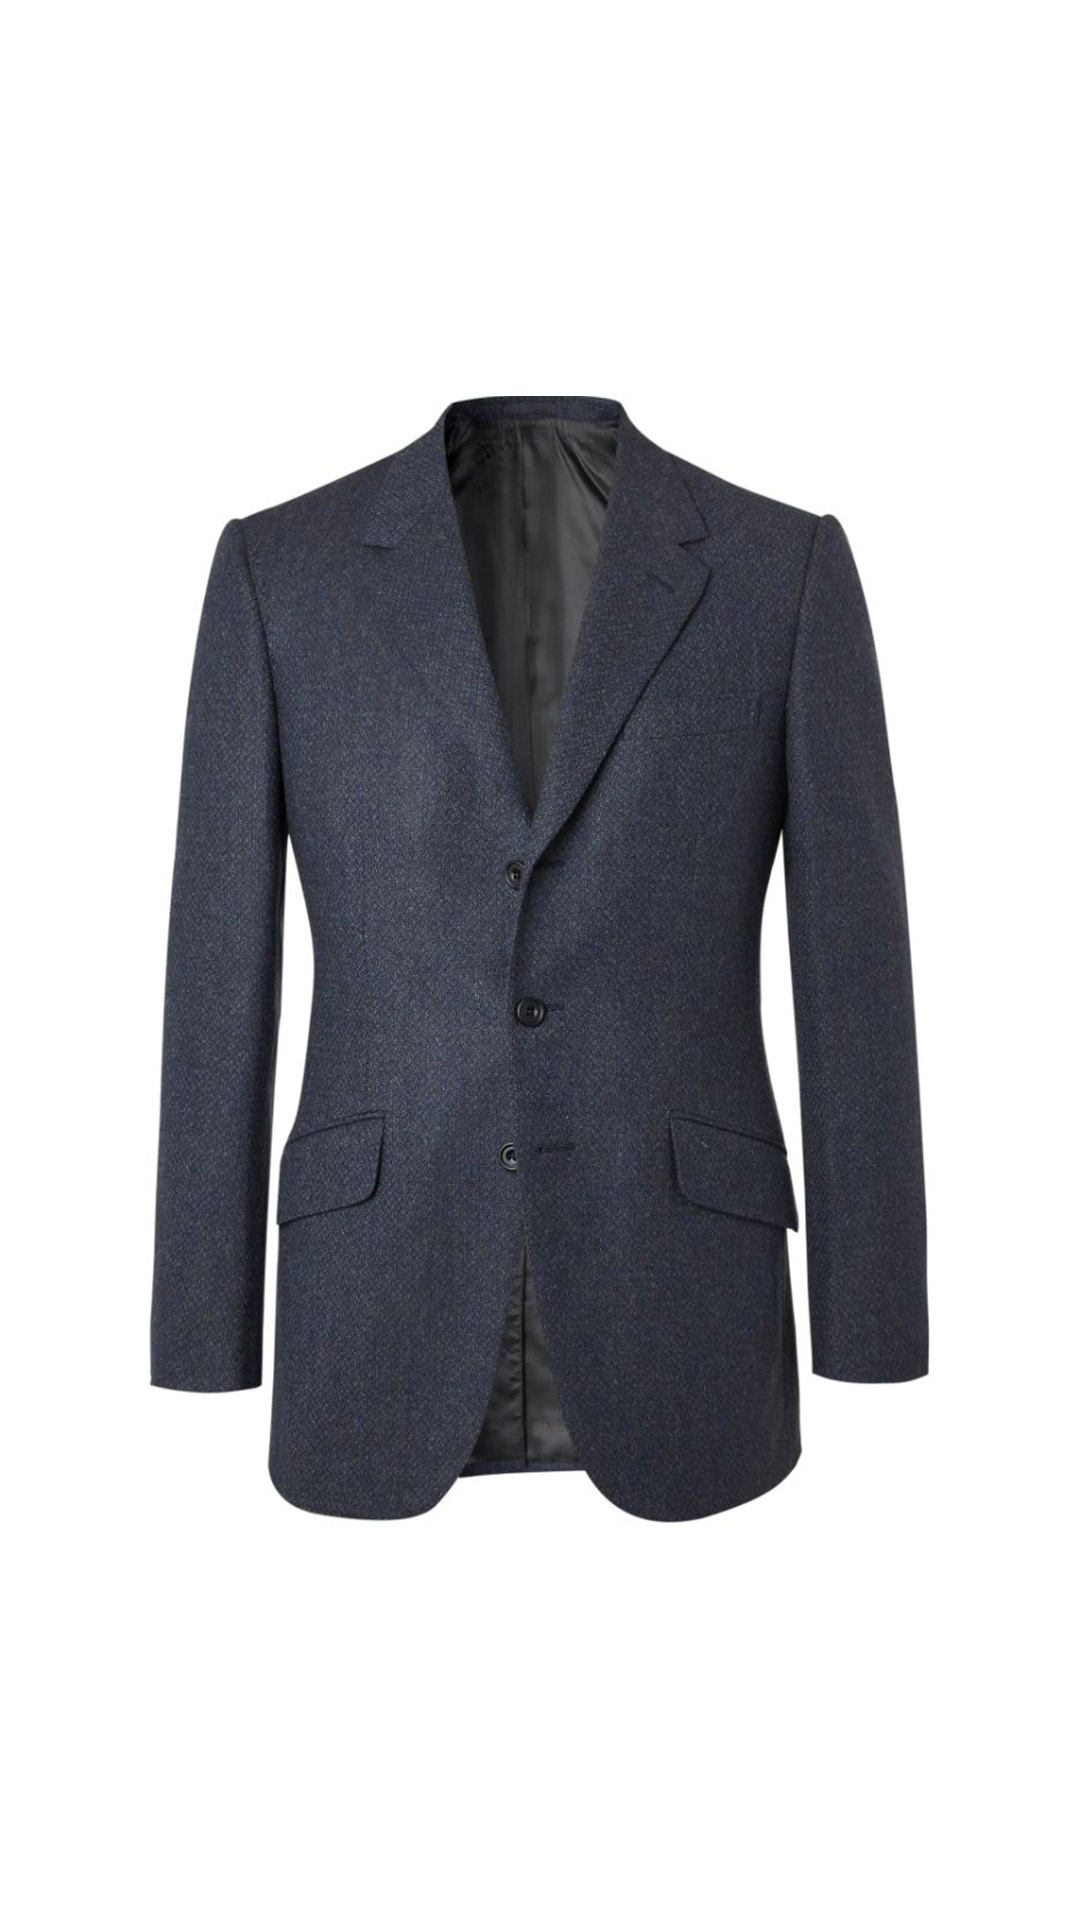 KINGSMAN Suit Jacket